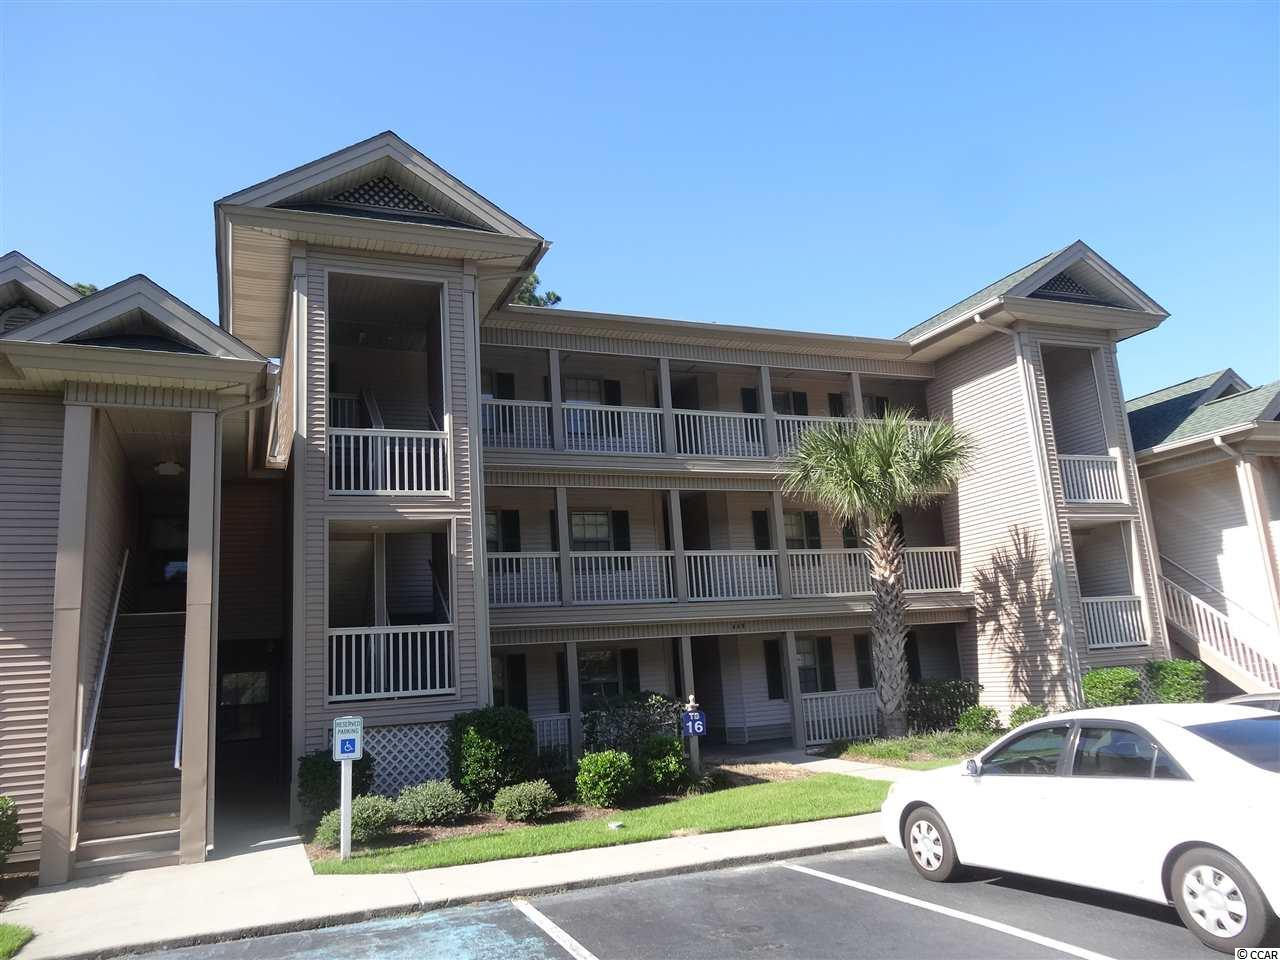 What an excellent opportunity to own a 3rd floor True Blue Condo for a primary home, second home, or investment property (short term and long term rentals allowed). 3 bedroom/ 2 bath condo with a view of the lake and the 17th Fairway of True Blue Golf Club. Seller has used as an investment property for 15 years and has never rented to smokers or pet owners. This 3rd floor unit has vaulted ceiling in the great room and dining area, ceiling fan in the great room and large picture window to view the golf course, lake, and wooded area. Very functional kitchen with lots of cabinet and counter space, pantry, and breakfast bar. All 3 bedrooms have ceiling fans with lights and master bedroom/bathroom with a large walk-in closet and vanity. Large screened-in porch as well for relaxing and enjoying your morning coffee or afternoon beverage. Updates include roof replacement in 2014, new refridgerator and dishwasher in 2012, and dryer in 2013. True Blue Golf & Racquet Club offer 4 pool areas with hot tubs, 2 tennis courts, a gazebo and park area, golf club house with restaurant and pro shop, and The Steve Dresser Golf Academy. Close to Pawleys Island beaches, restaurants, nightlife, shopping, and other area golf courses. Myrtle Beach is 25 miles, Georgetown approximately 8 miles, and Historic Charleston 70 miles.